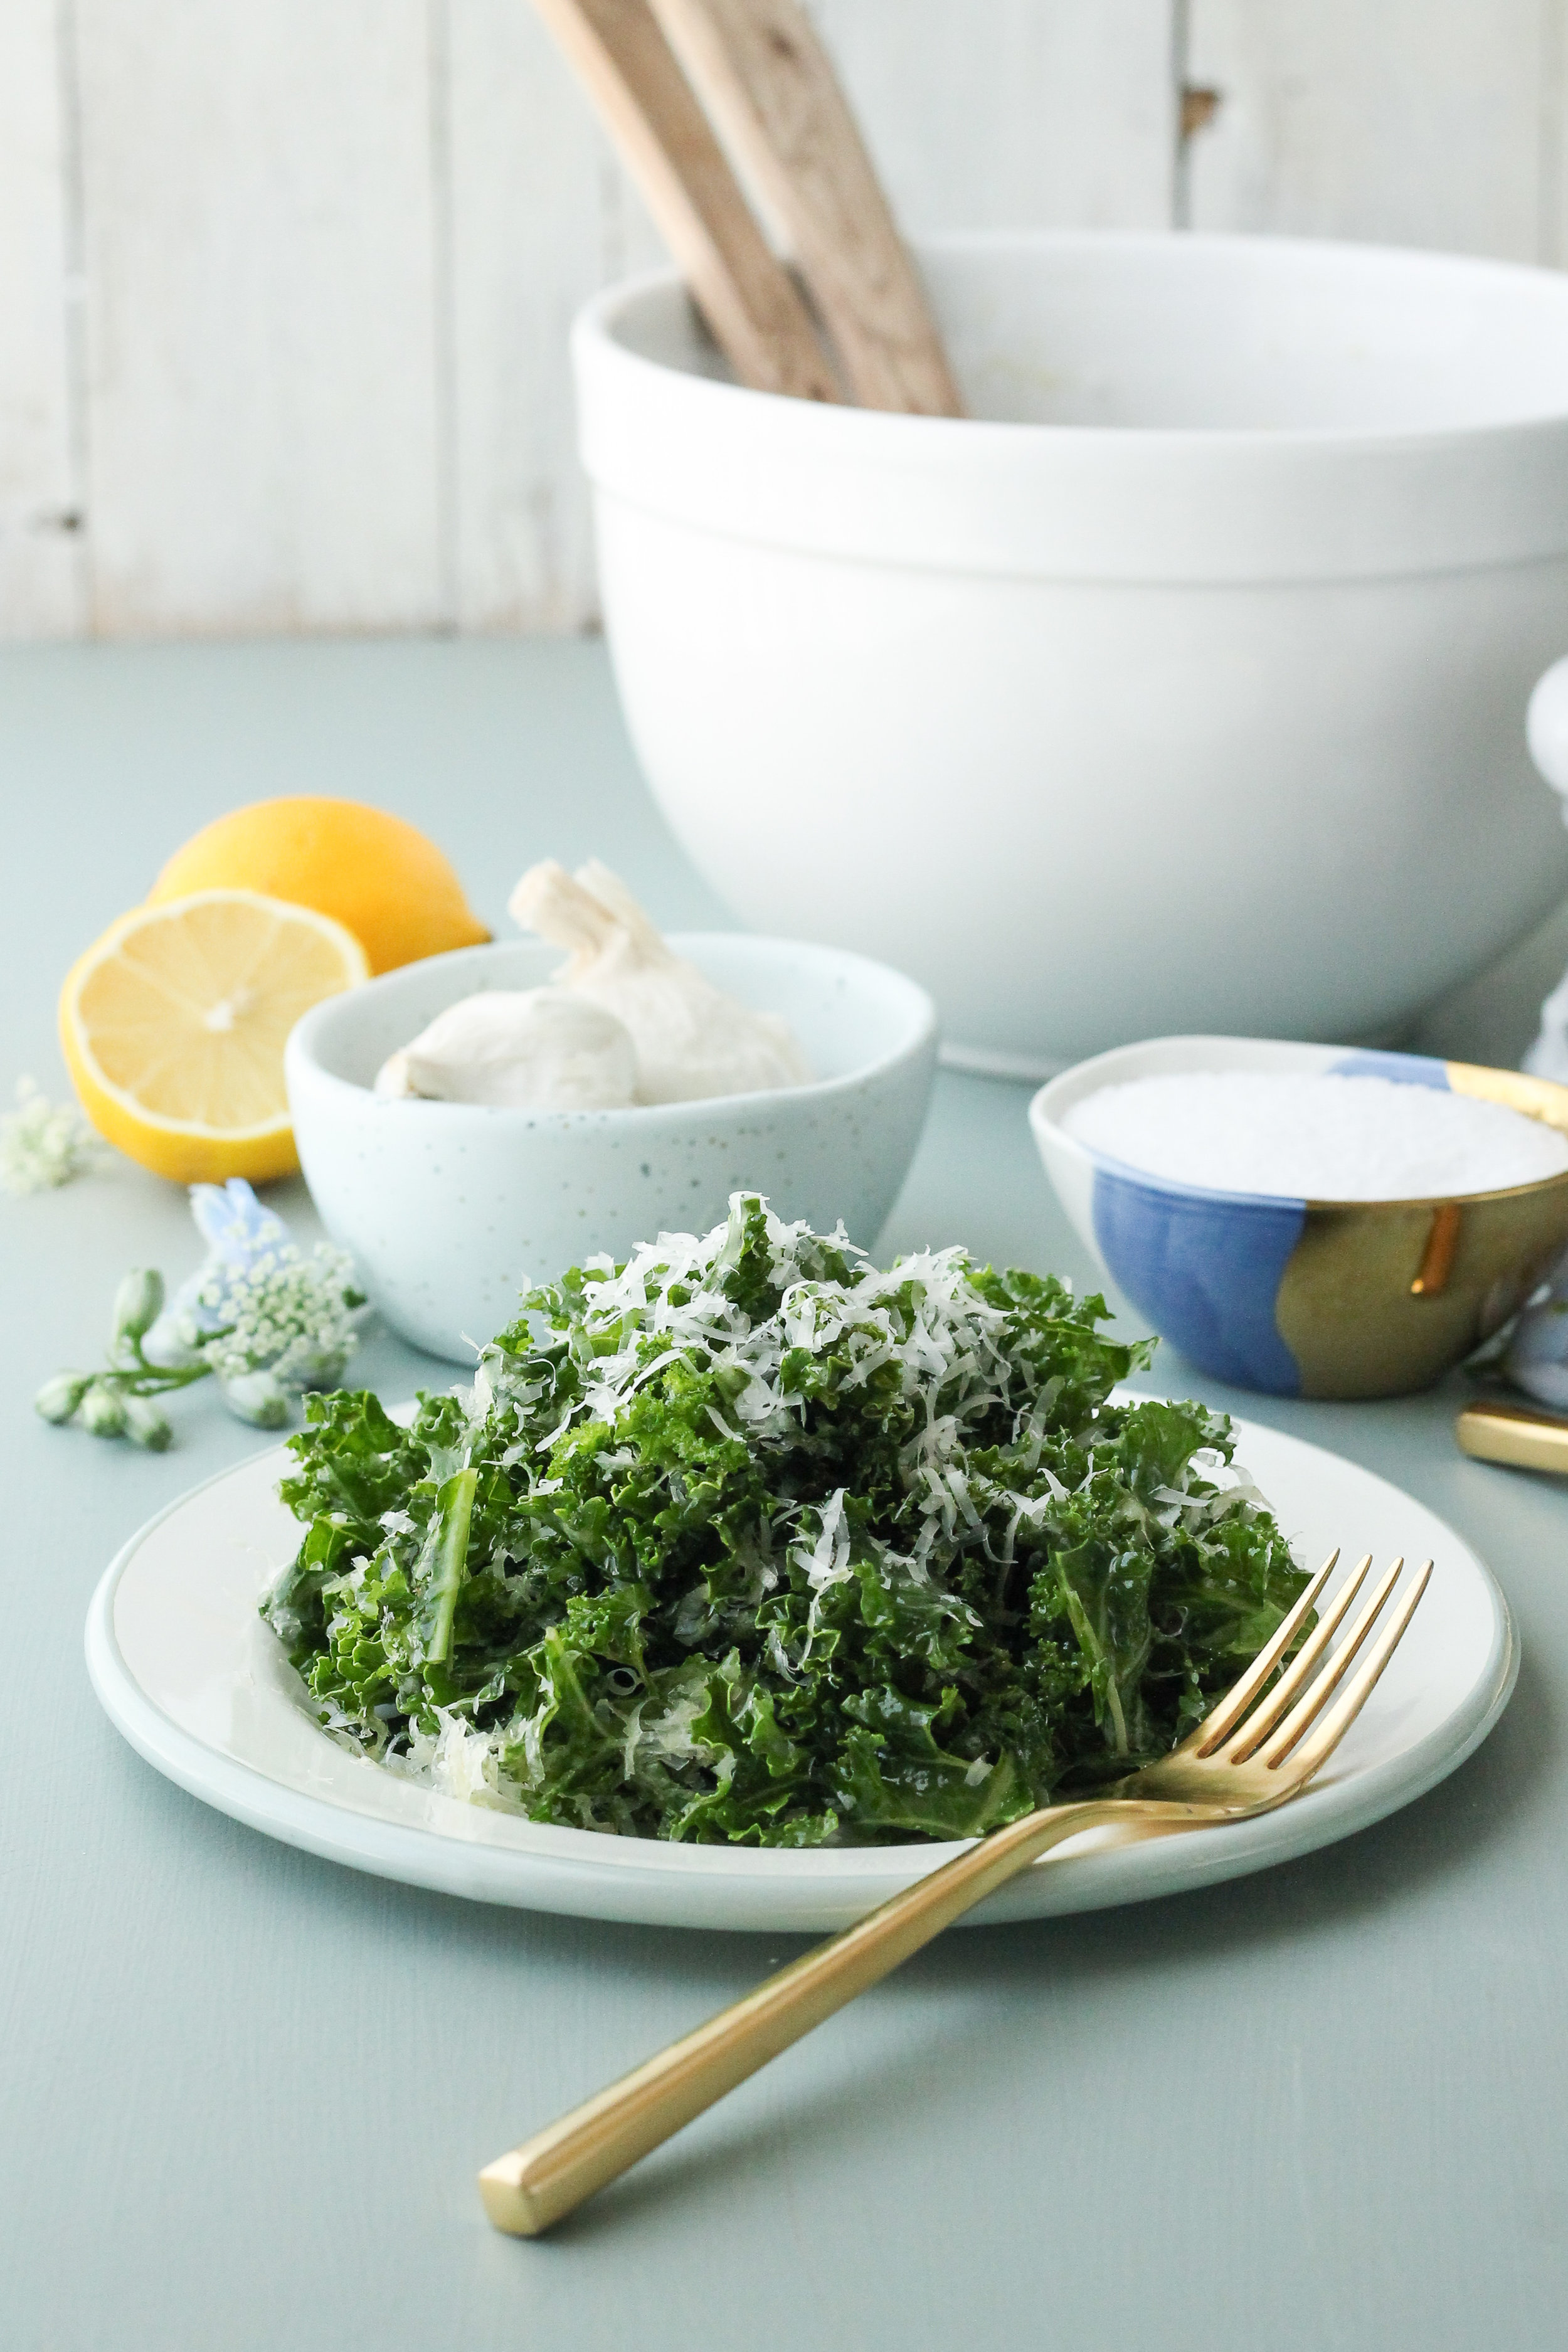 This Kale Salad with Spicy Garlic & Lemon Vinaigrette is the ultimate, serve-with-anything side dish!  It's fresh, healthful, and seriously addicting.  Find the recipe on WWW.PEDANTICFOODIE.COM!